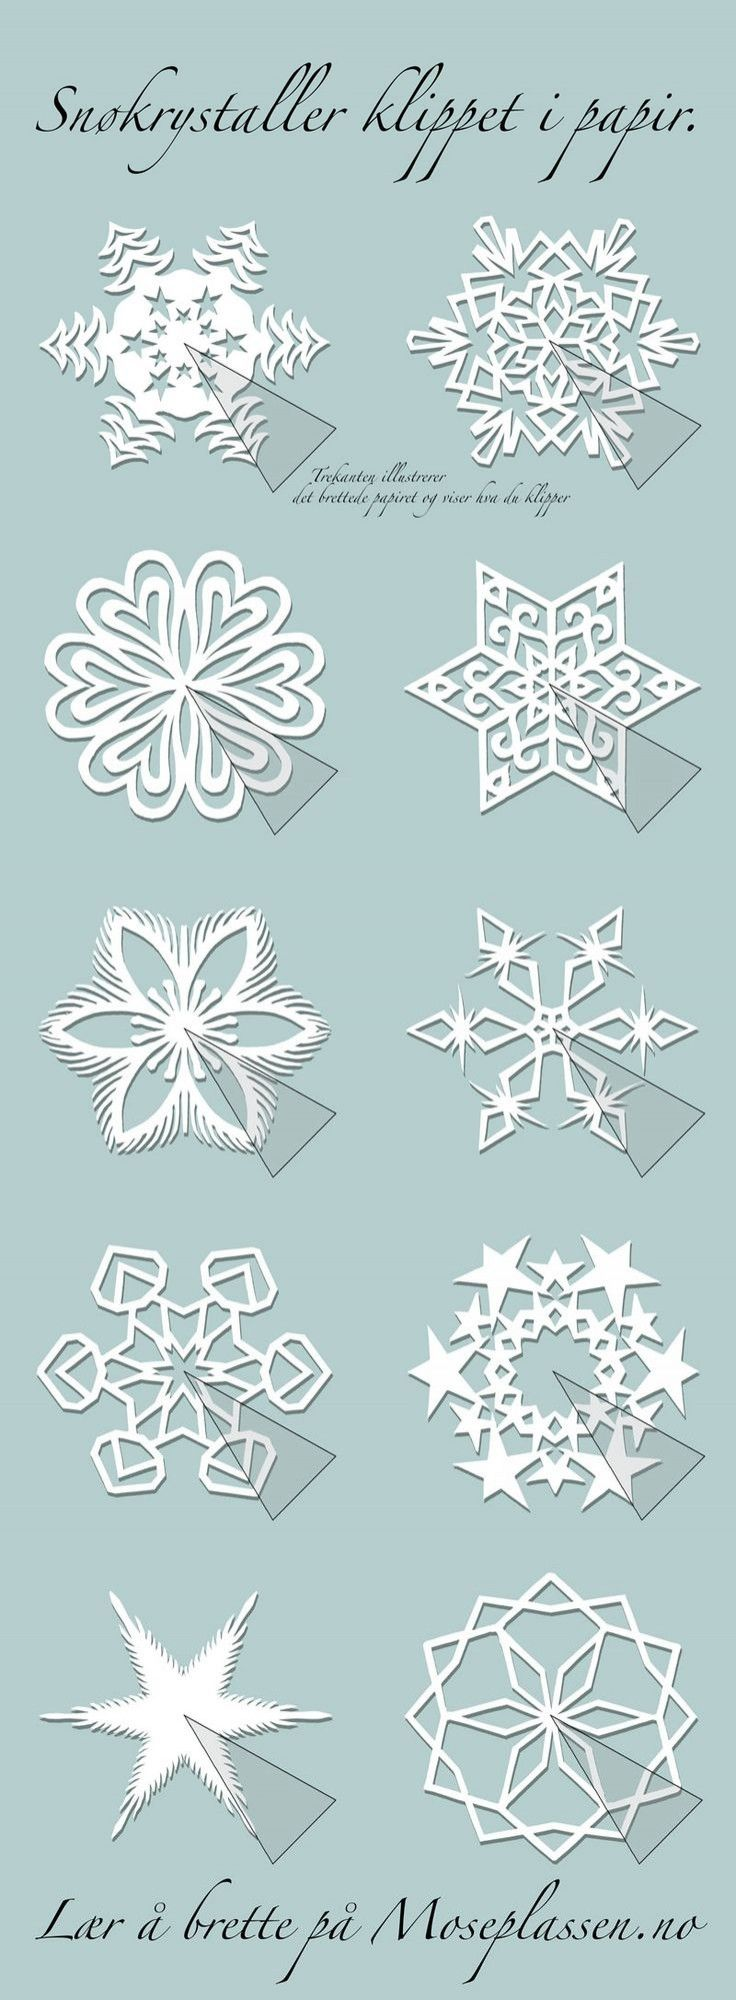 kid craft monday (snowflakes!)